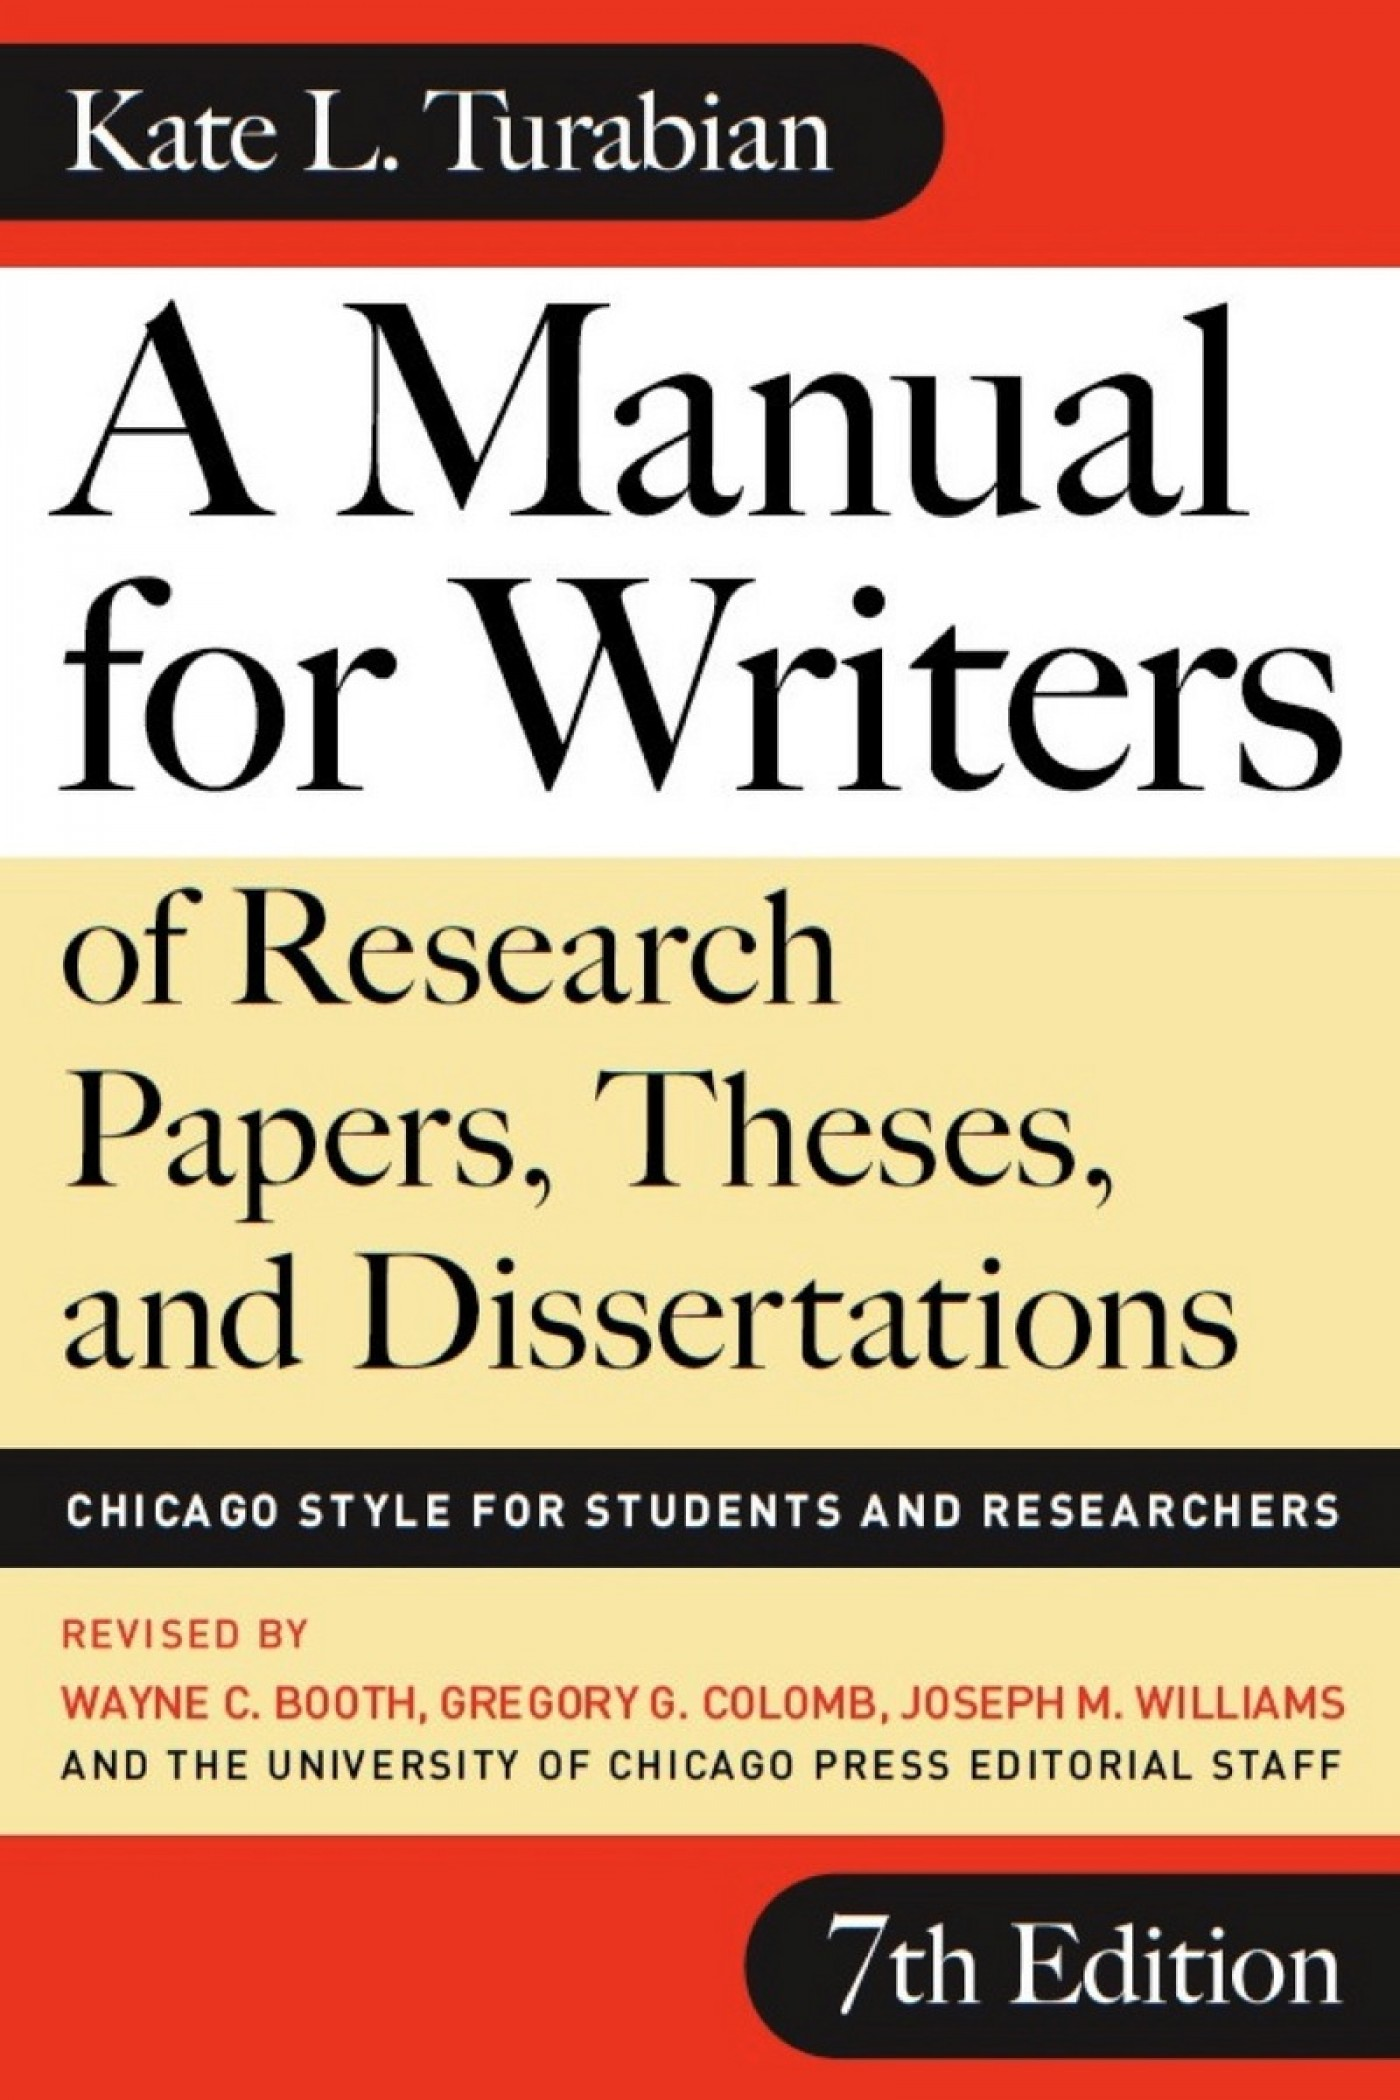 004 Research Paper Manual For Writers Of Papers Theses And Dissertations Turabian Amazing A Pdf 1400